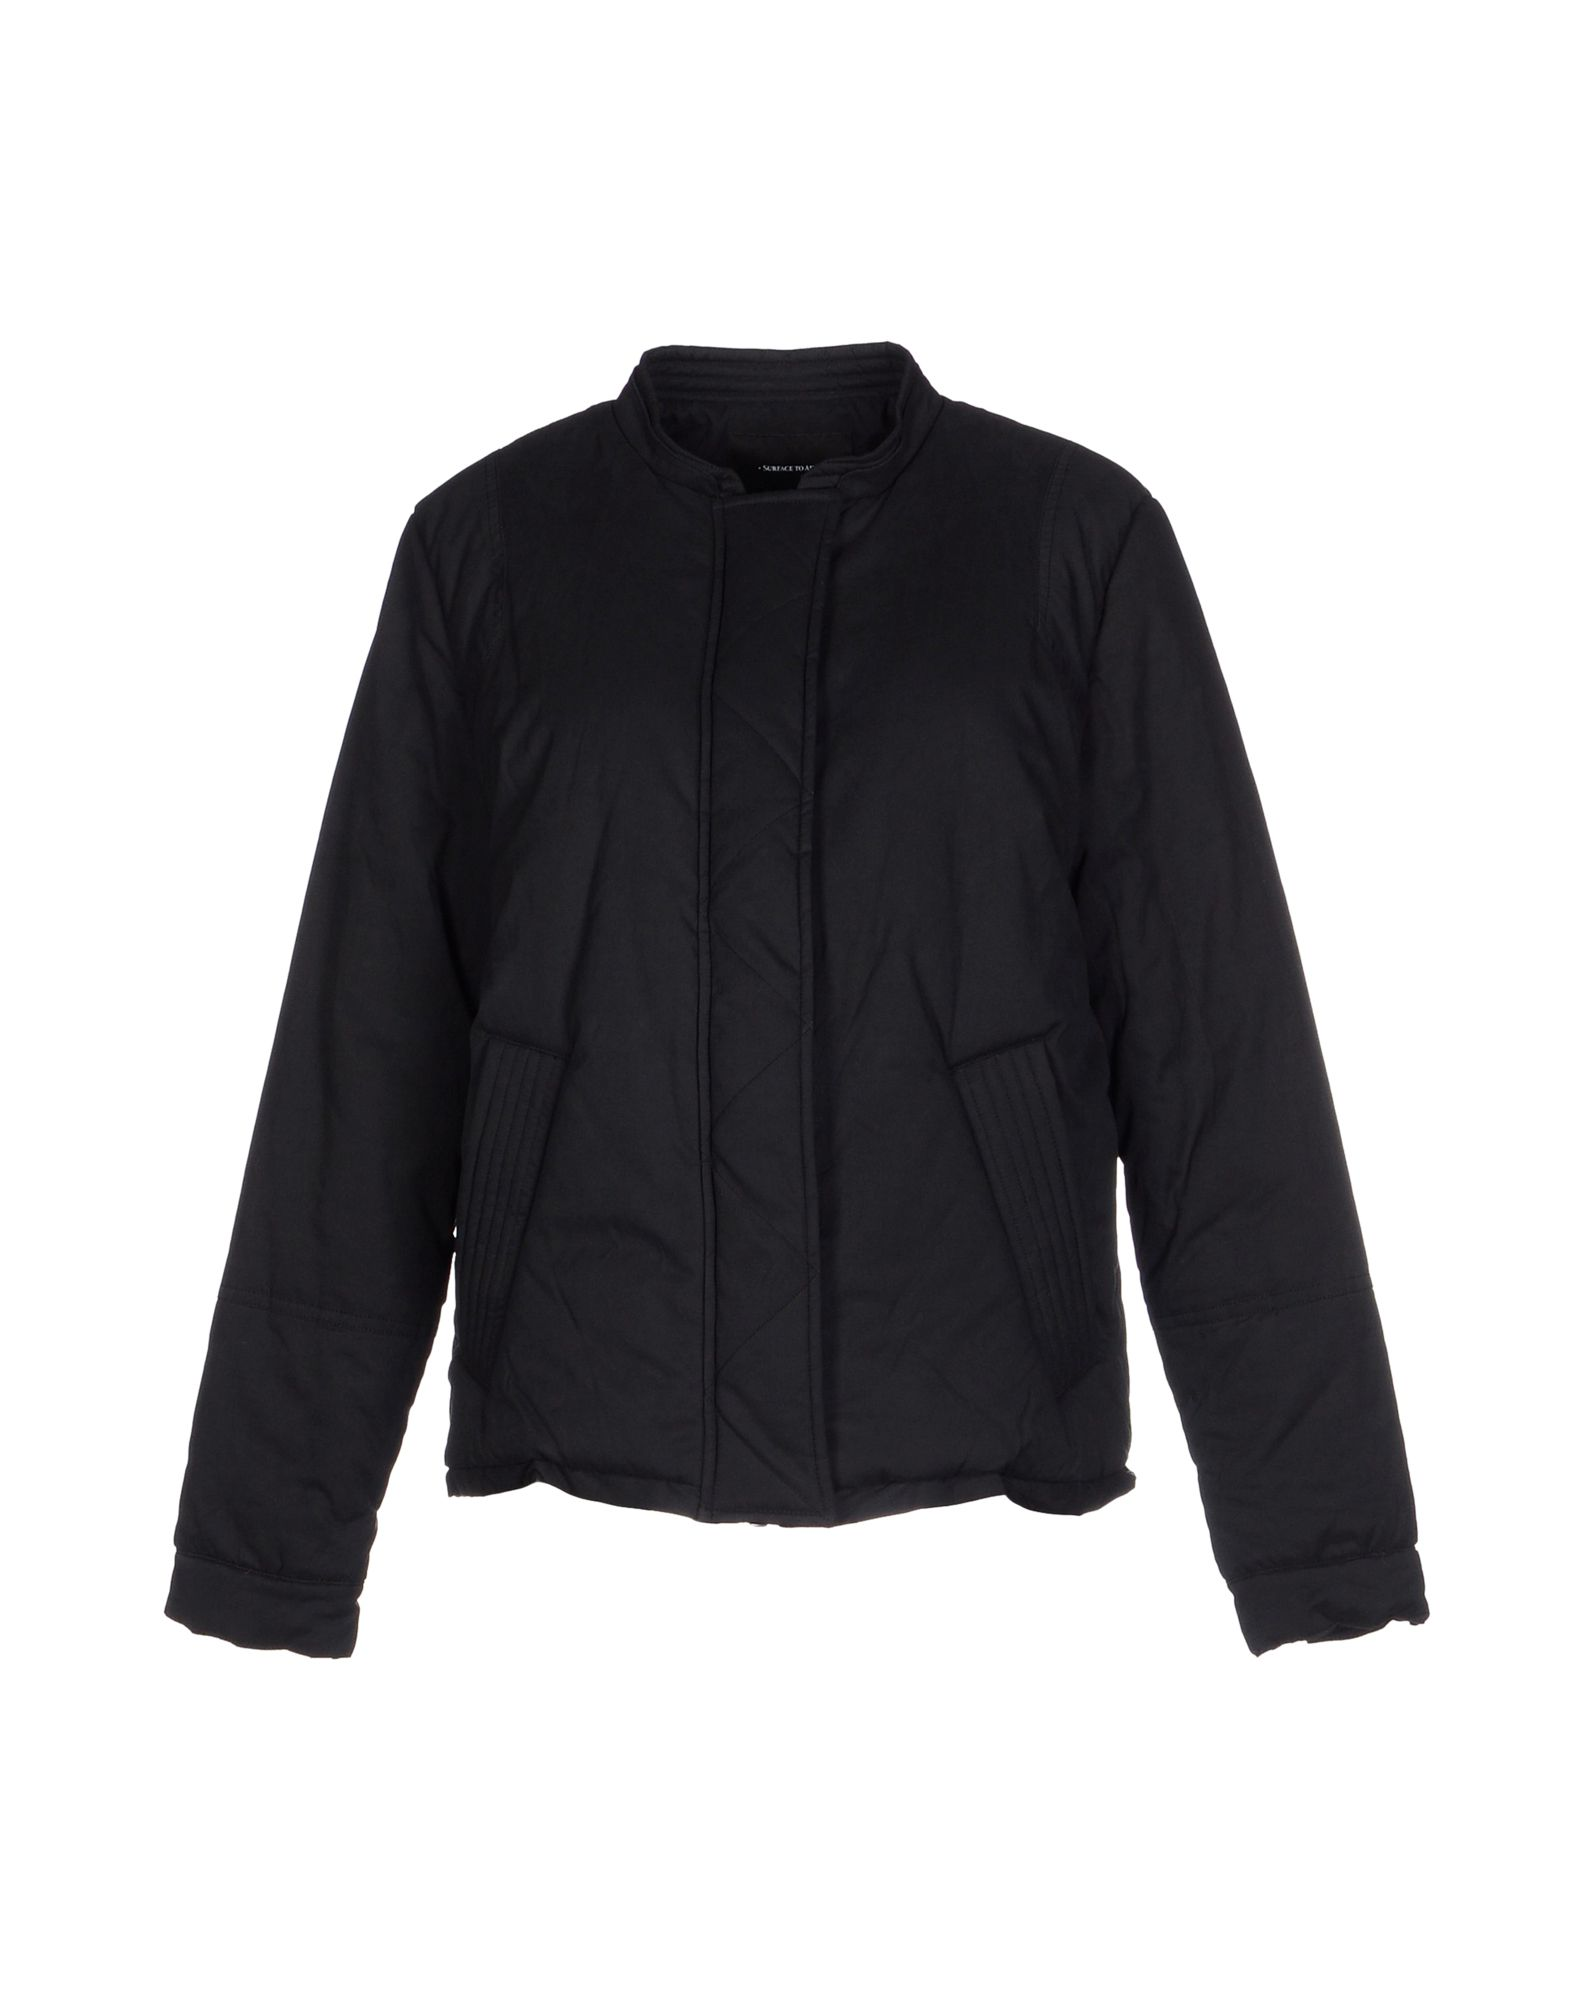 SURFACE TO AIR Jacket in Black